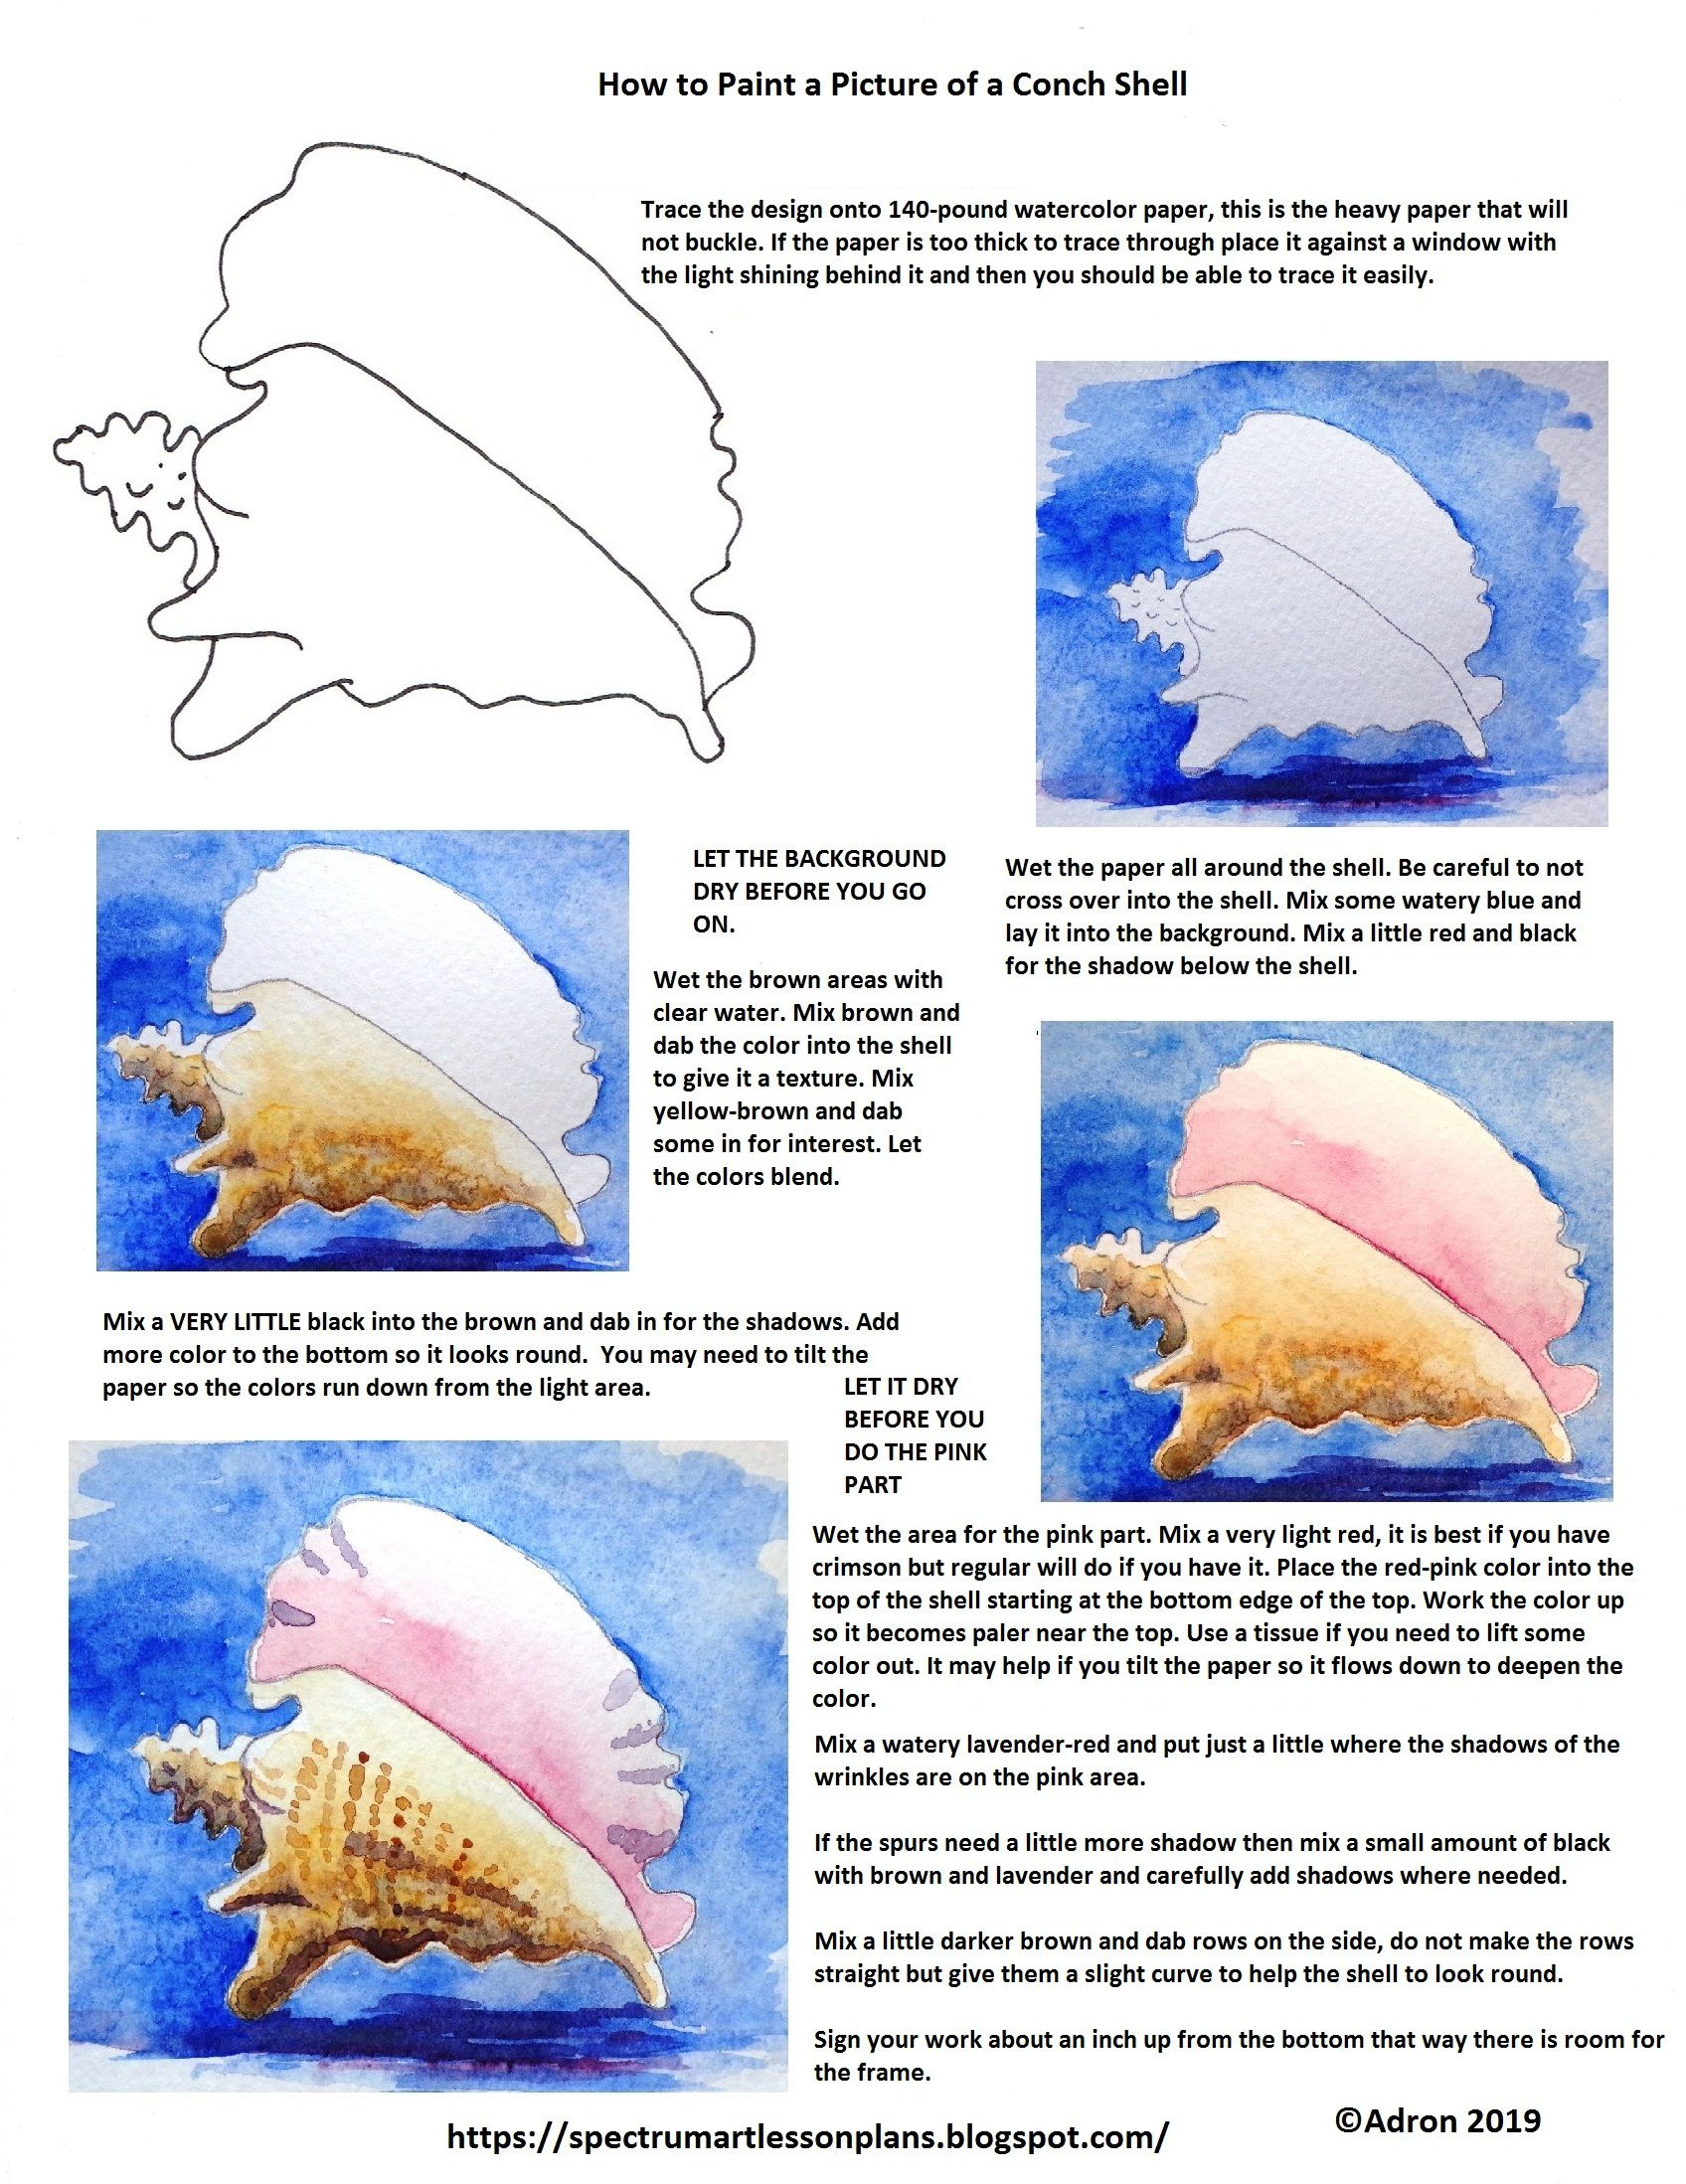 How To Paint A Picture Of A Conch Shell